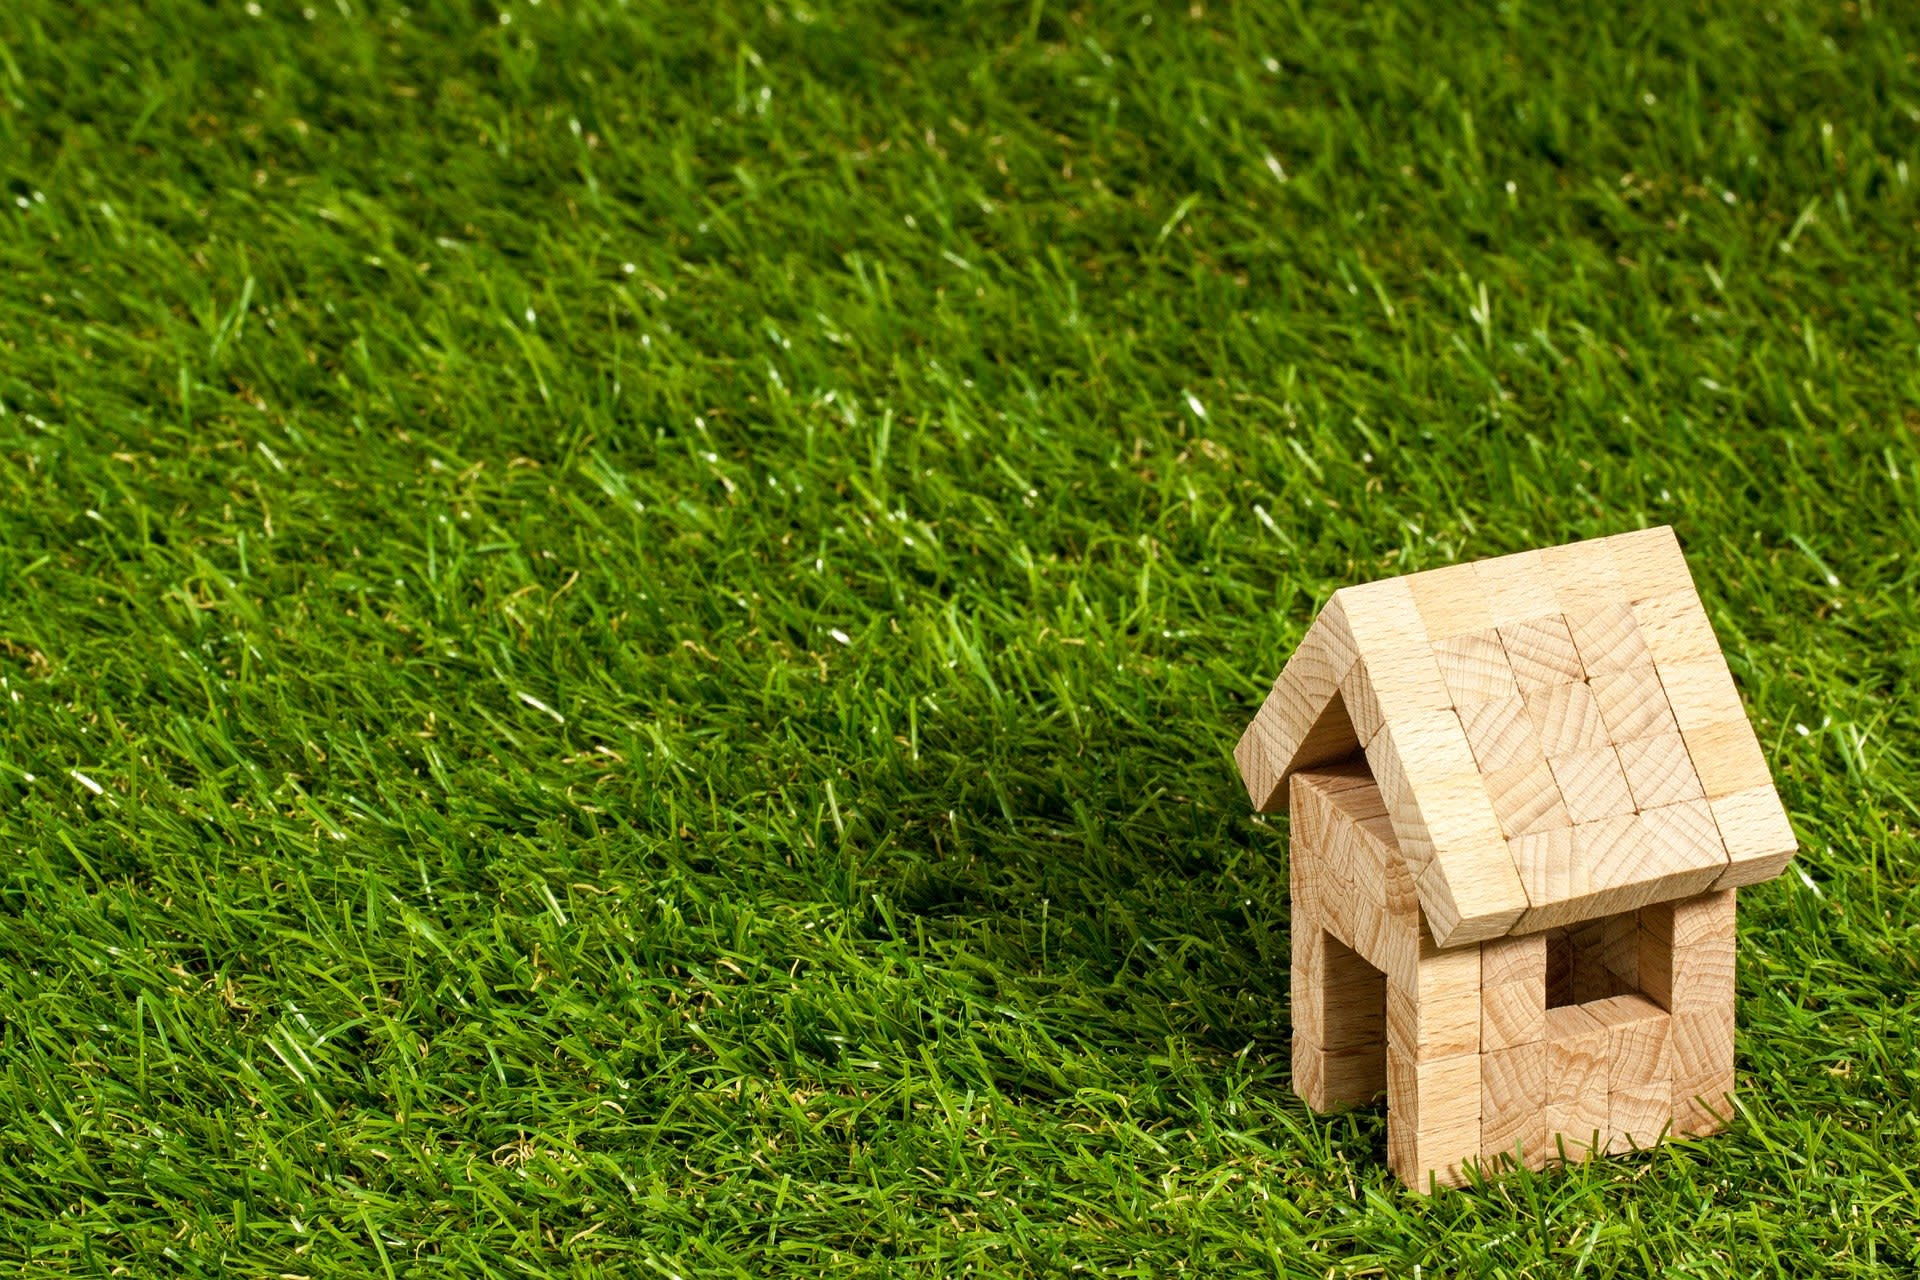 Leeds launches 10-year mortgages